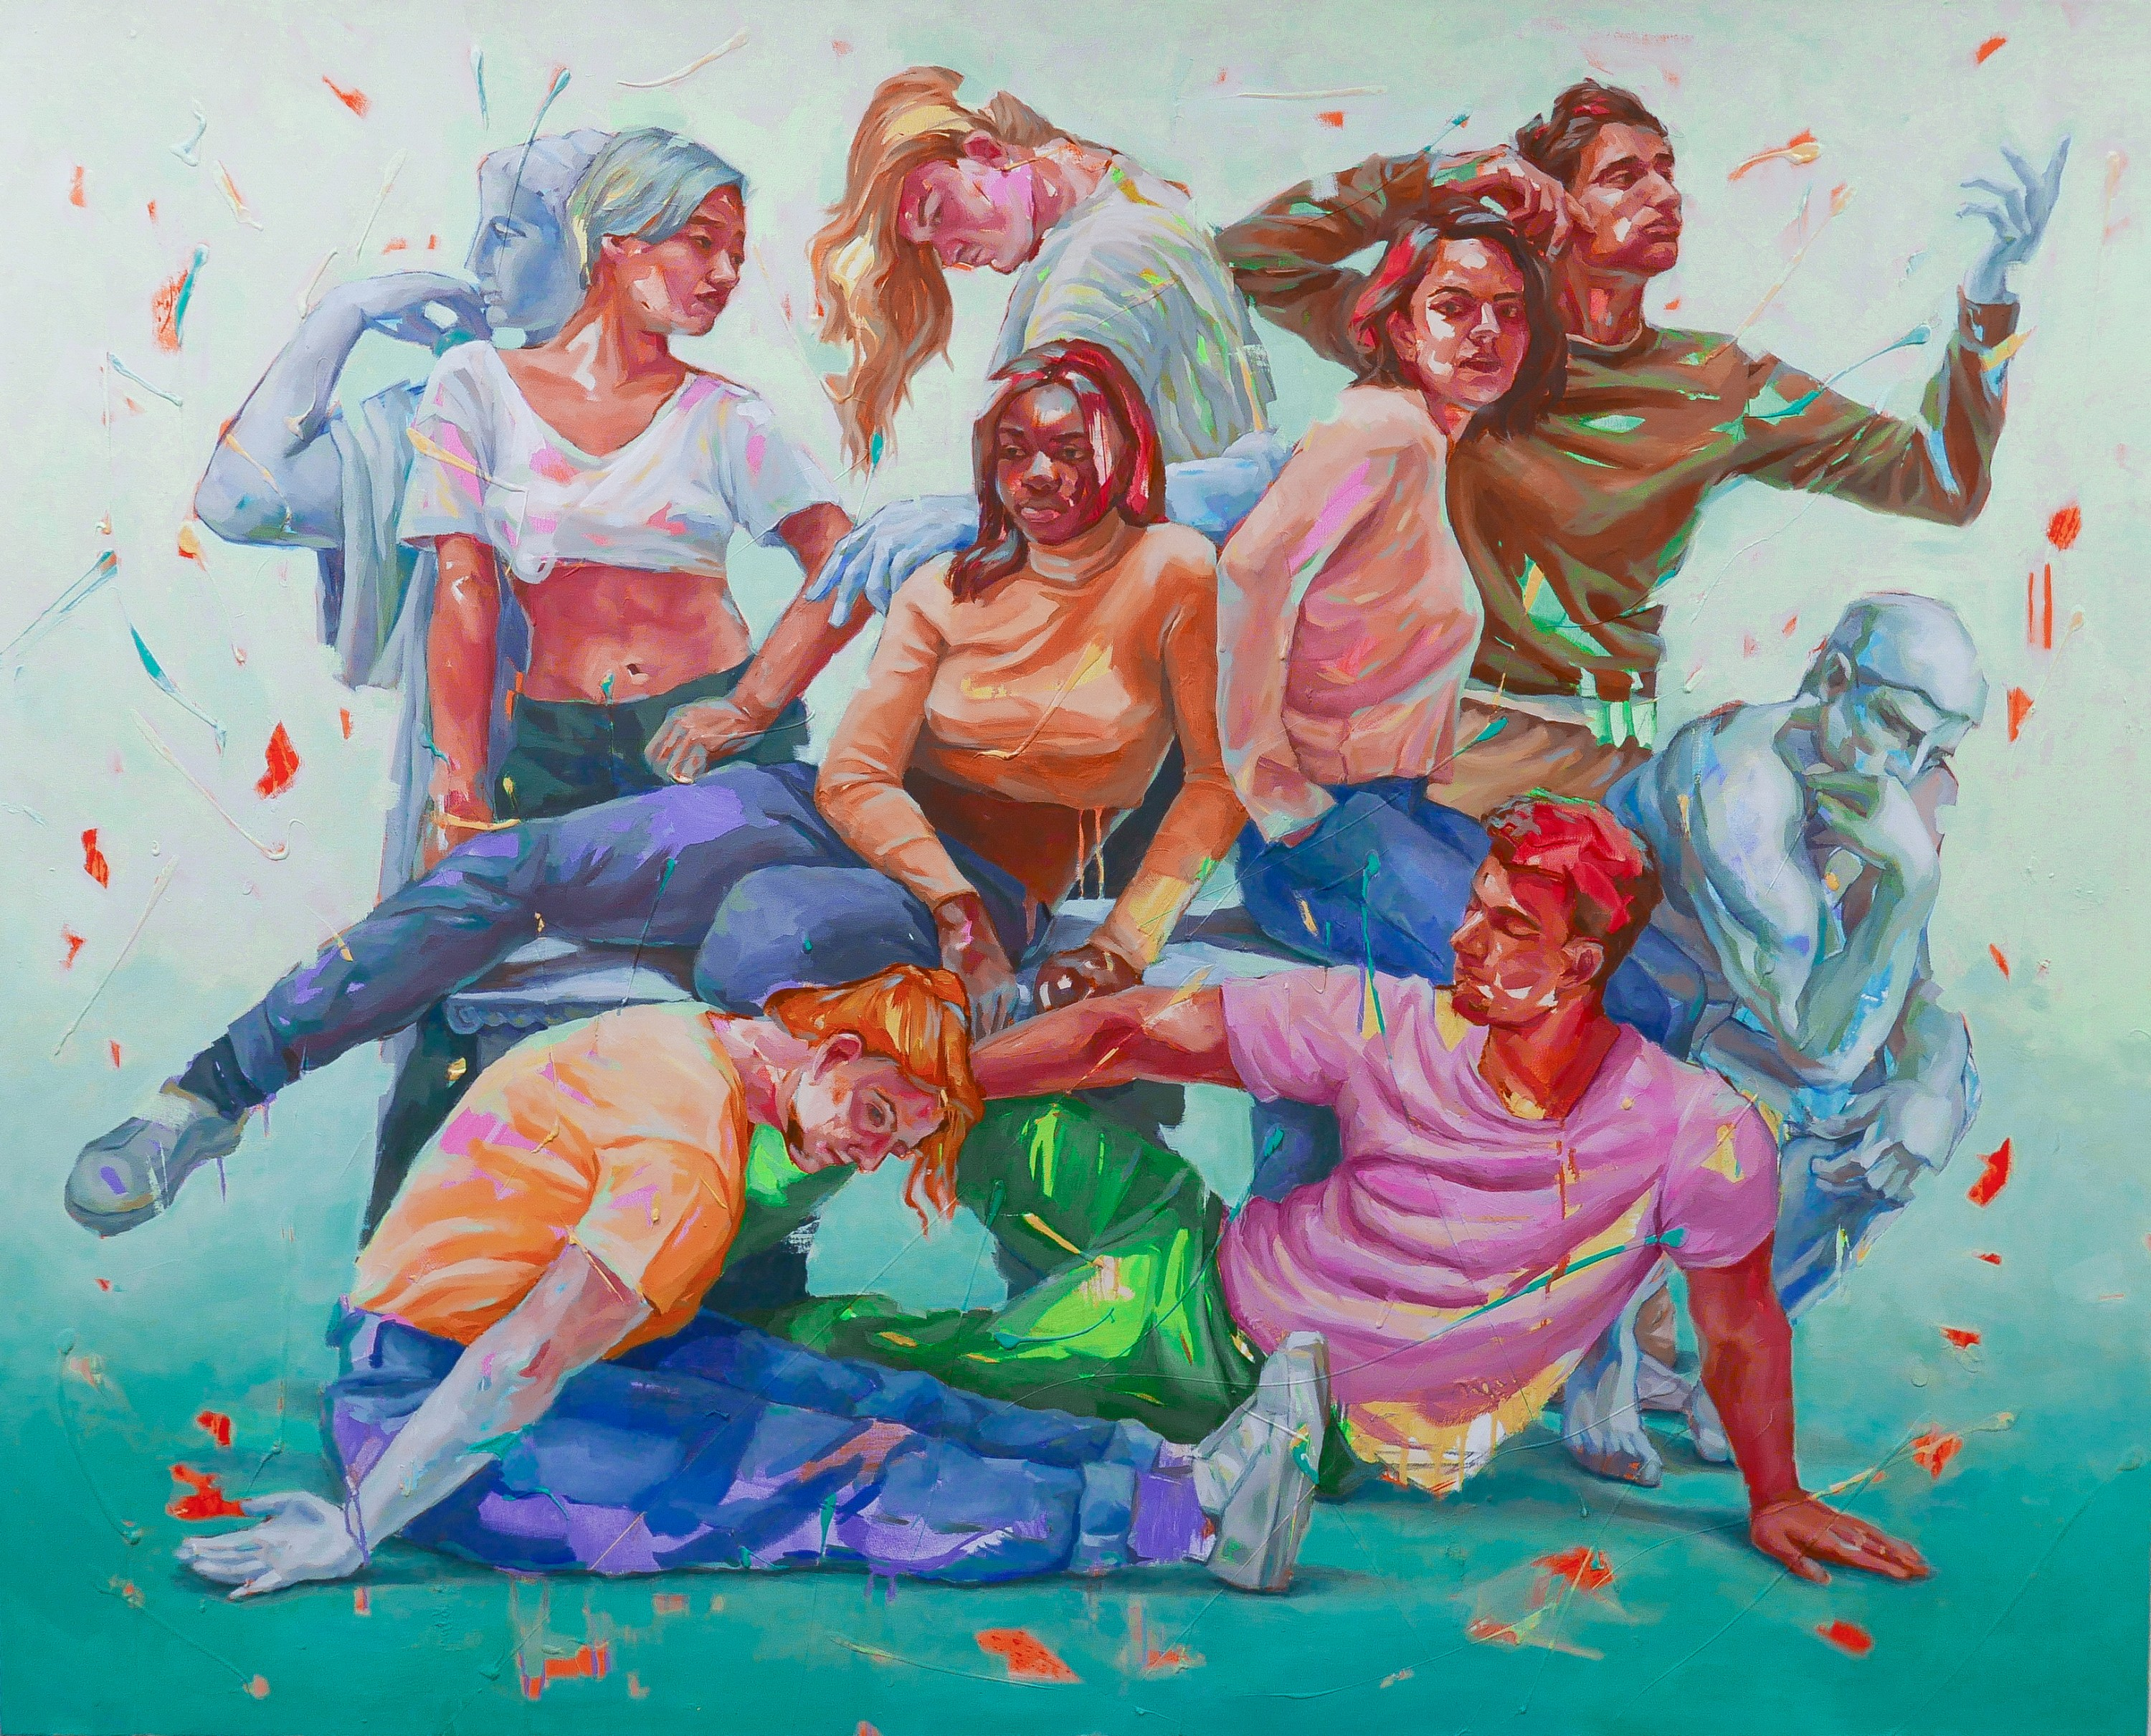 This series of paintings talk about the intercultural relationships of lovers and friends through the layers of colors and patterns.